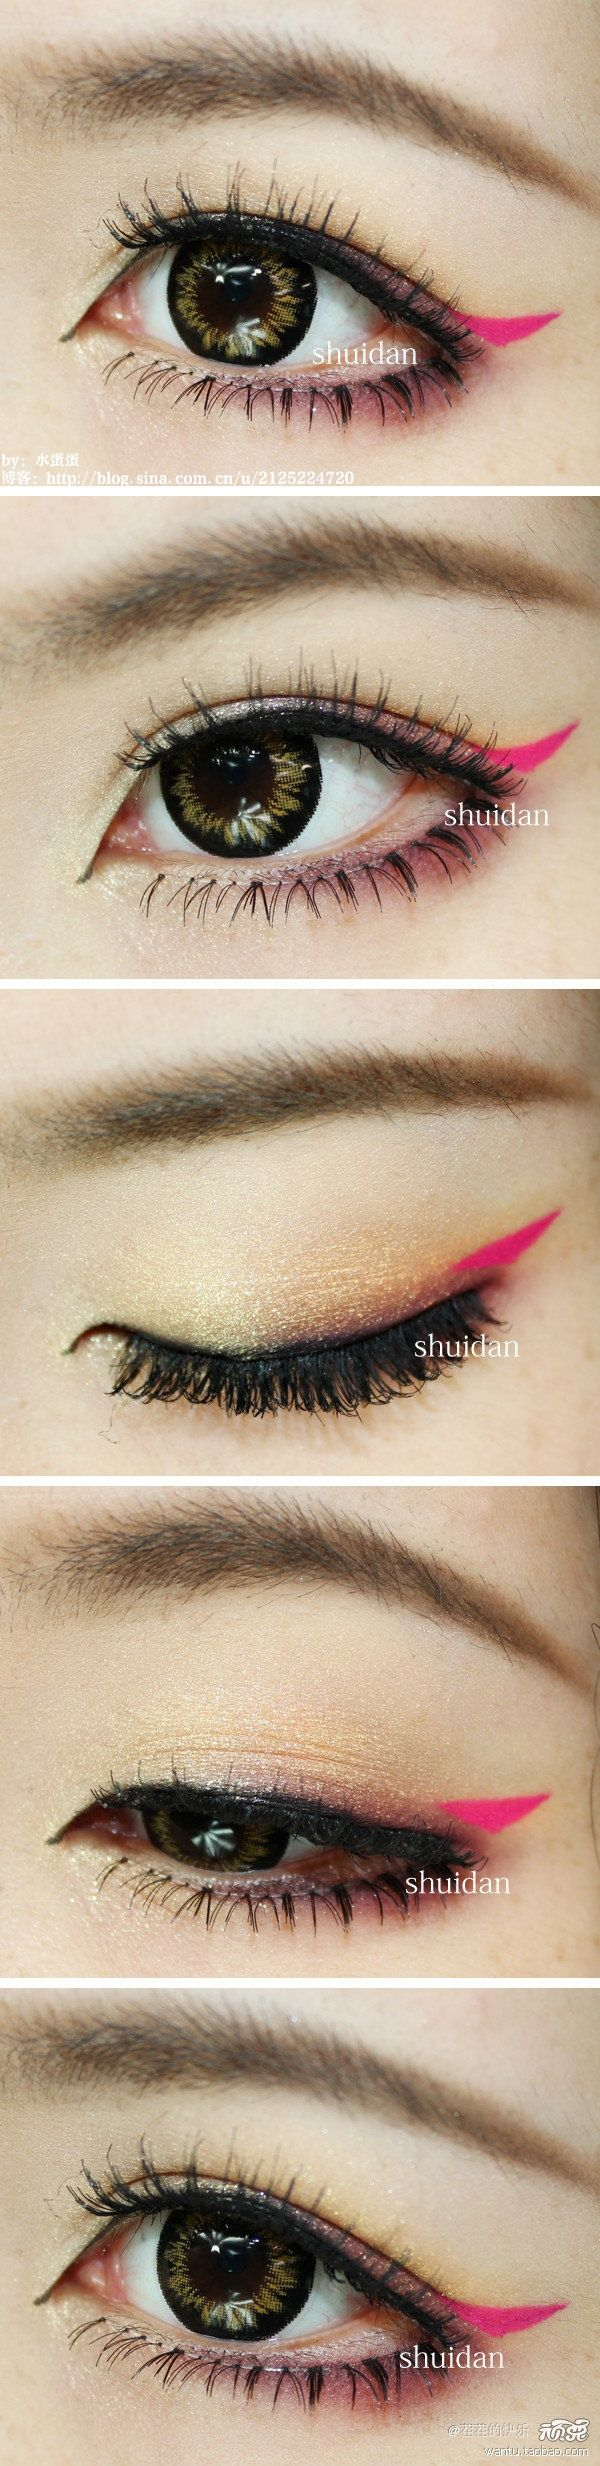 Korean ulzzang makeup tutorial featuring NEO Celeb Brown circle contacts - http://www.eyecandys.com/neo-celeb-brown/